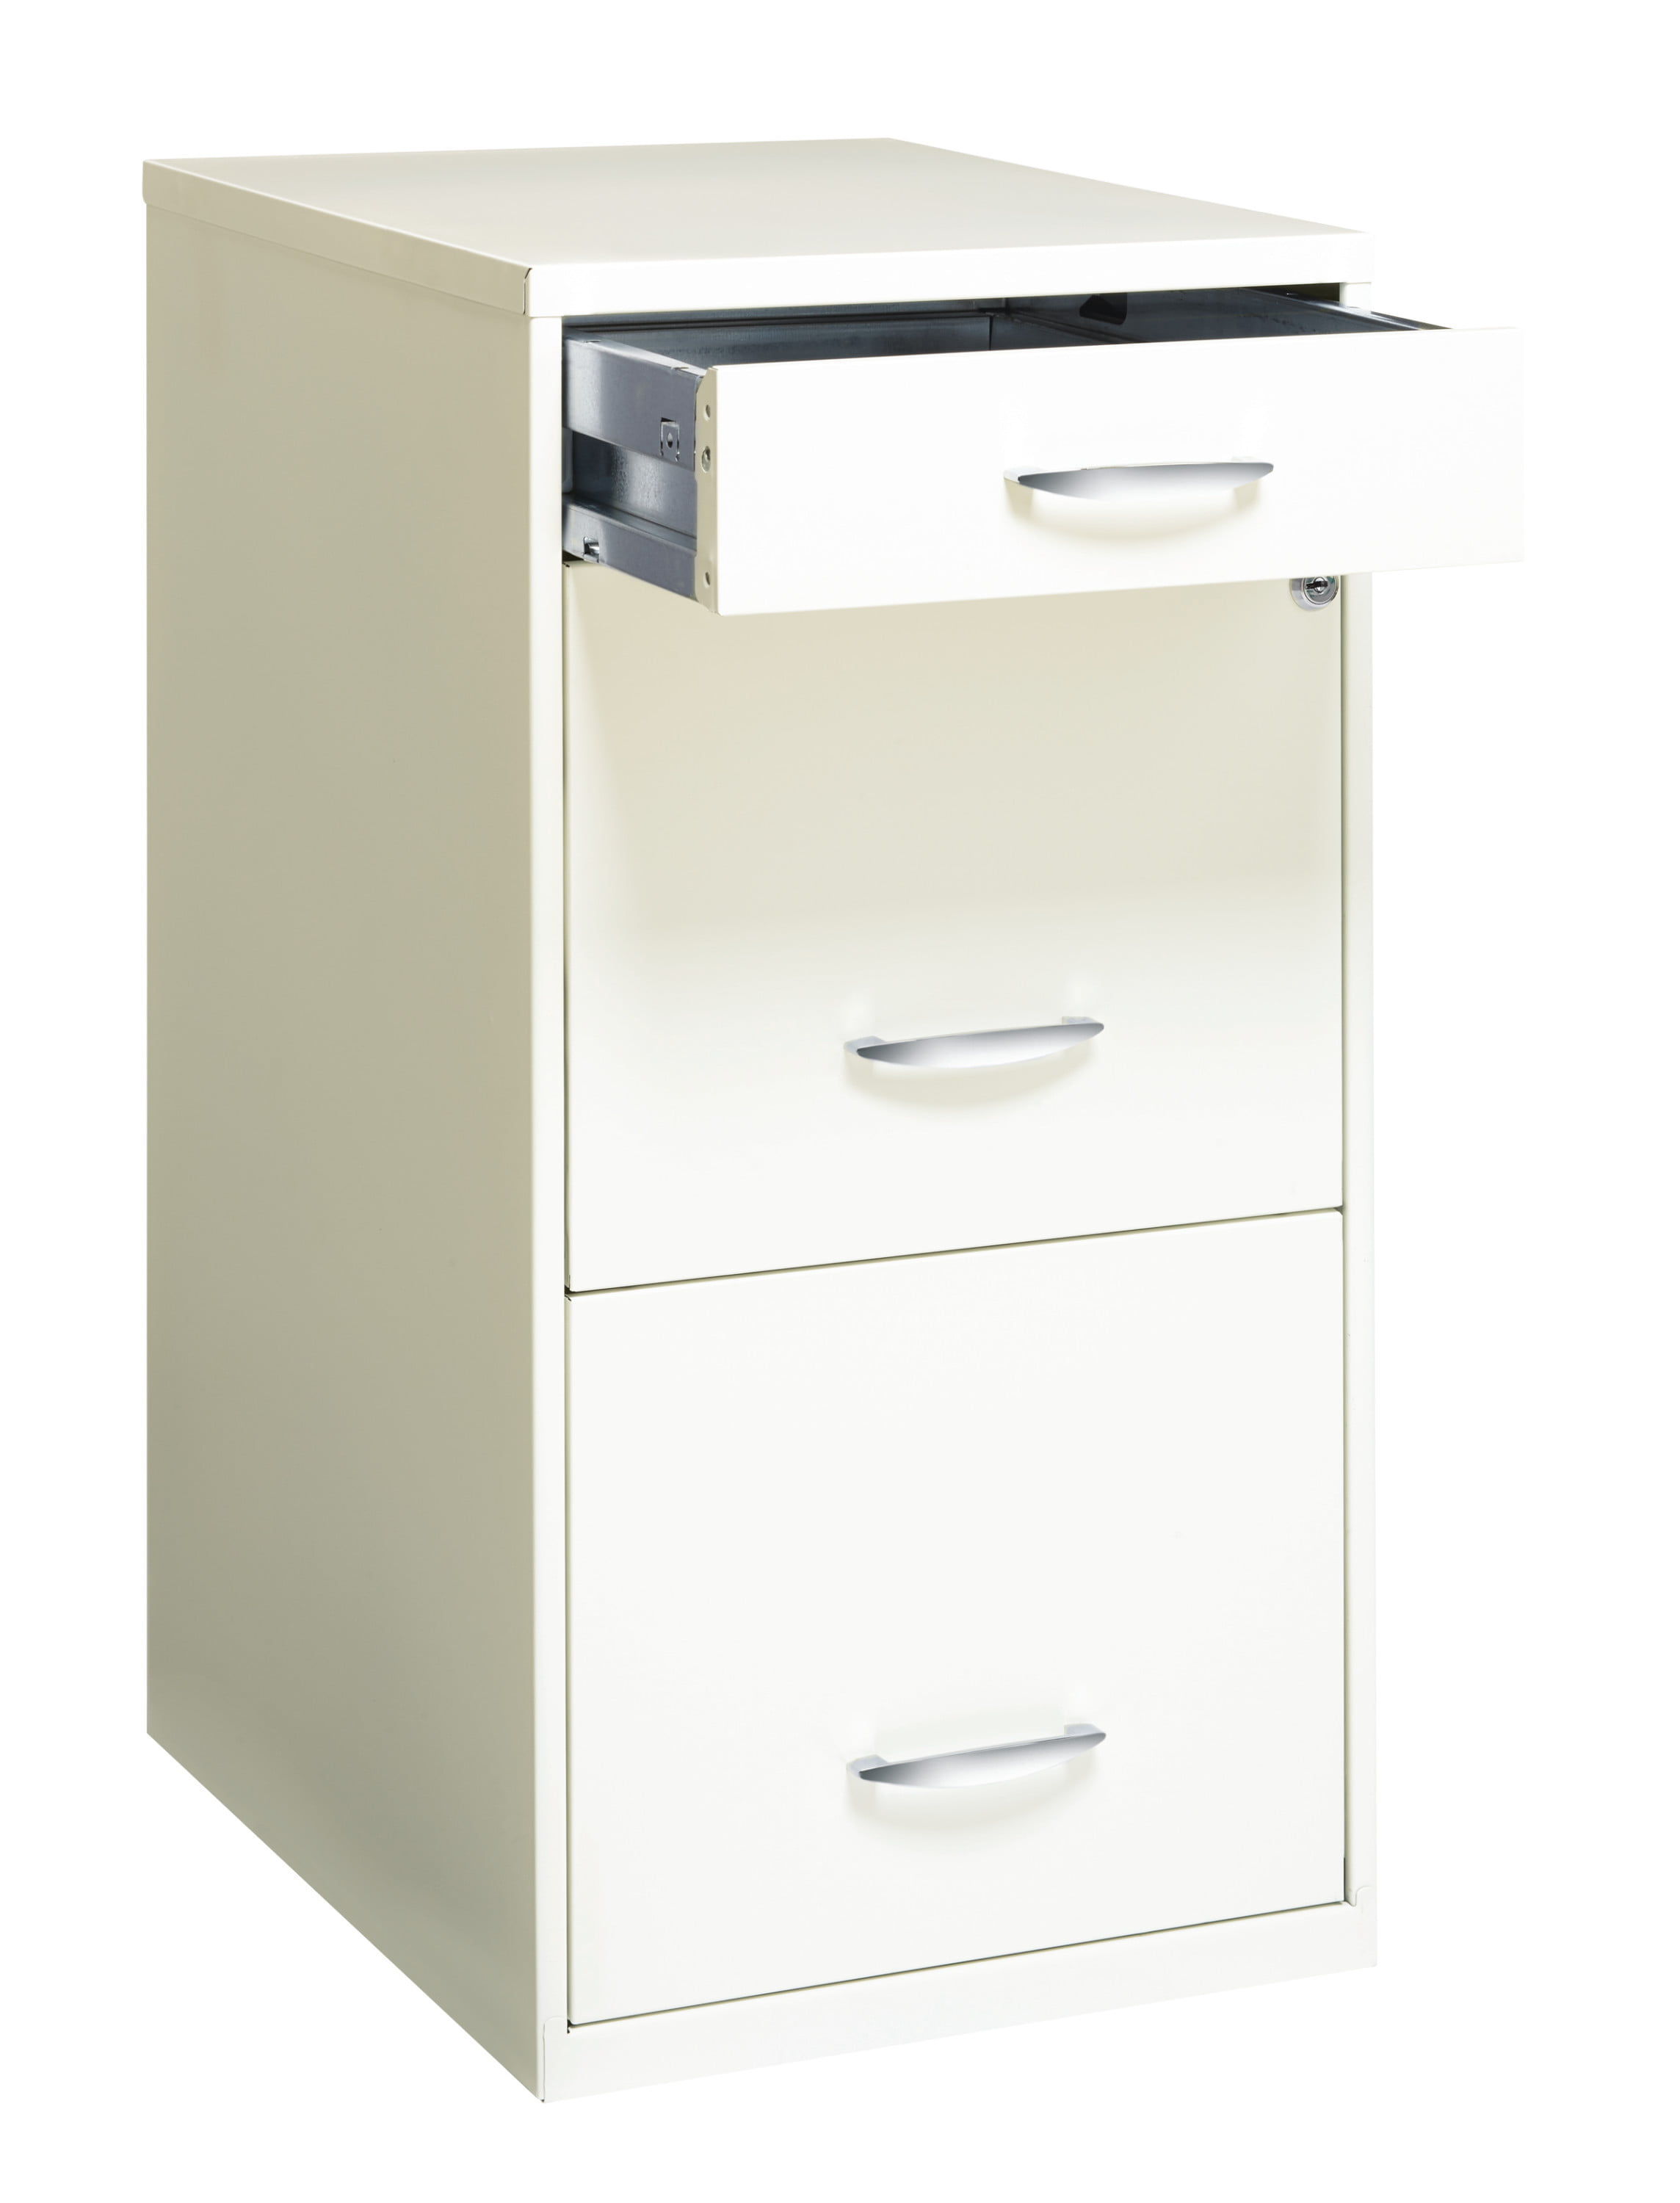 Space Solutions 34 Drawer File Cabinet with Pencil Drawer, Pearl White